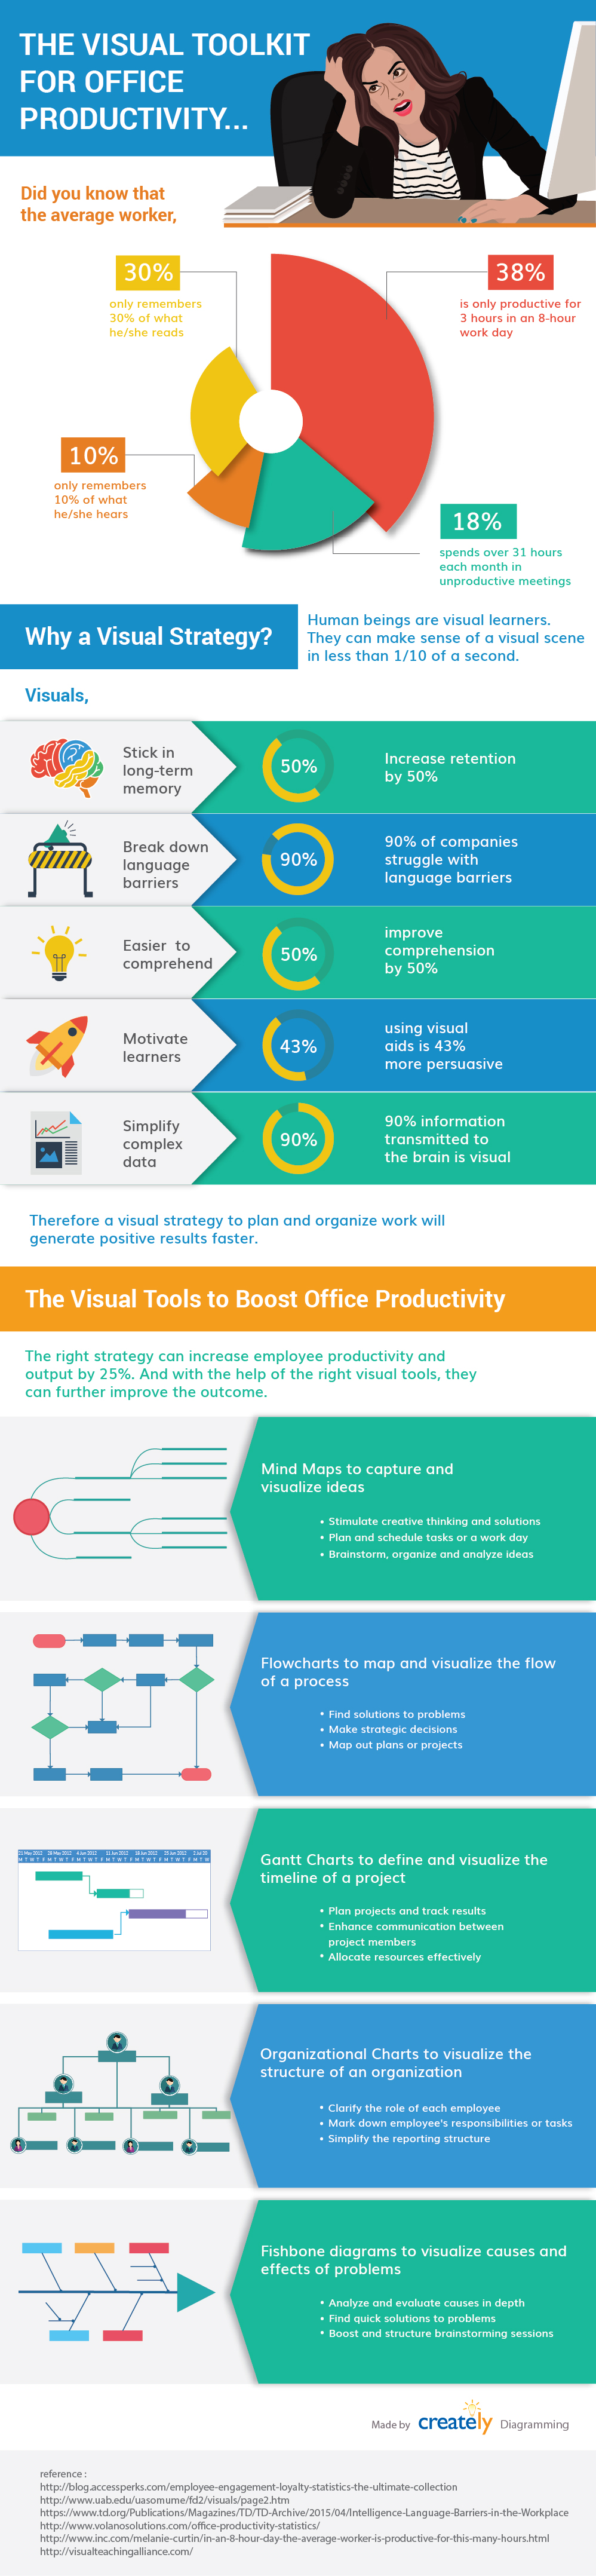 Visual tools to improve office productivity infographic